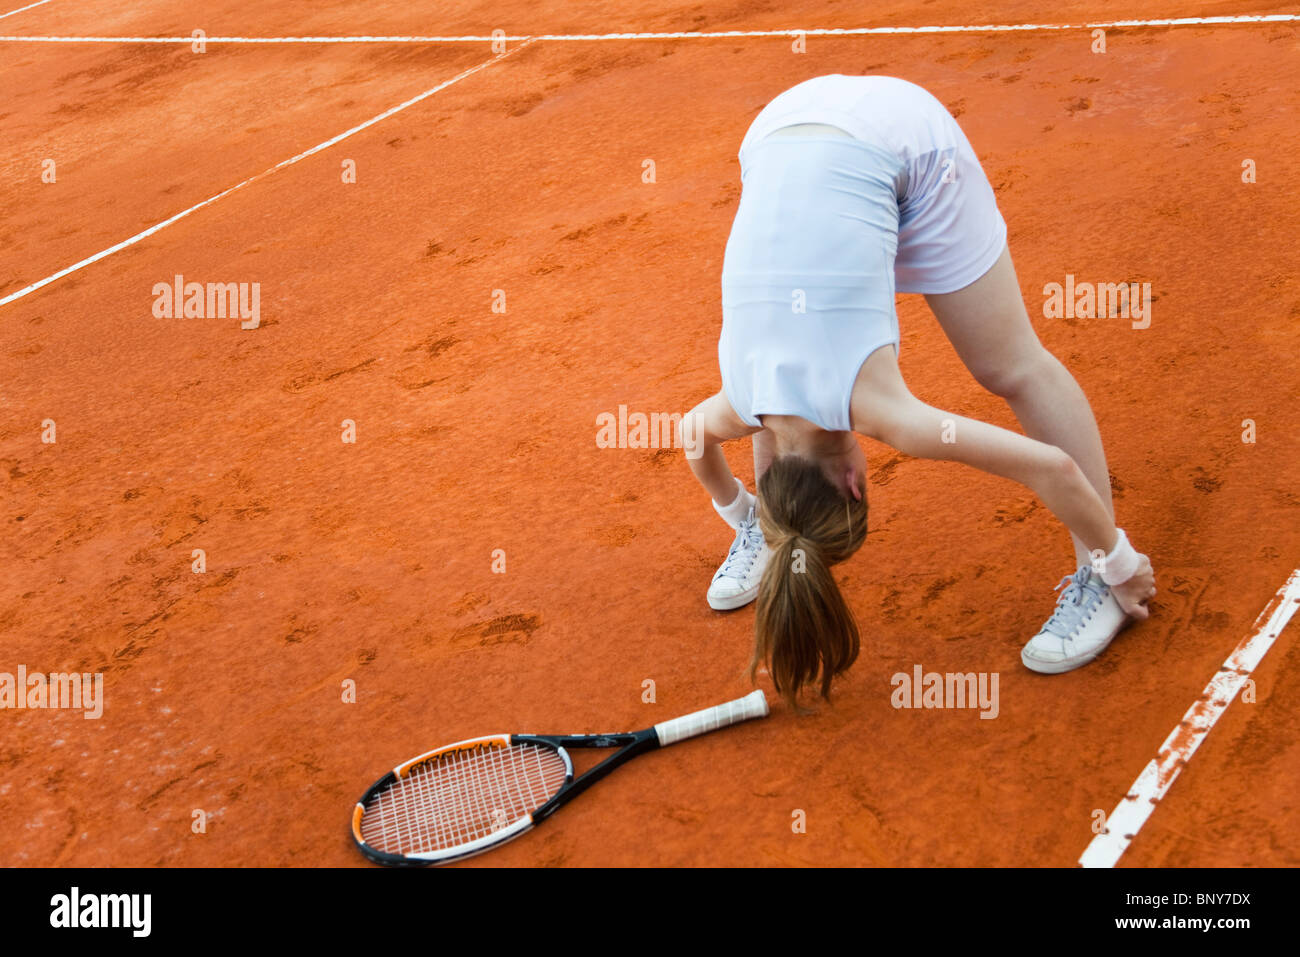 Tennis player stretching before game - Stock Image